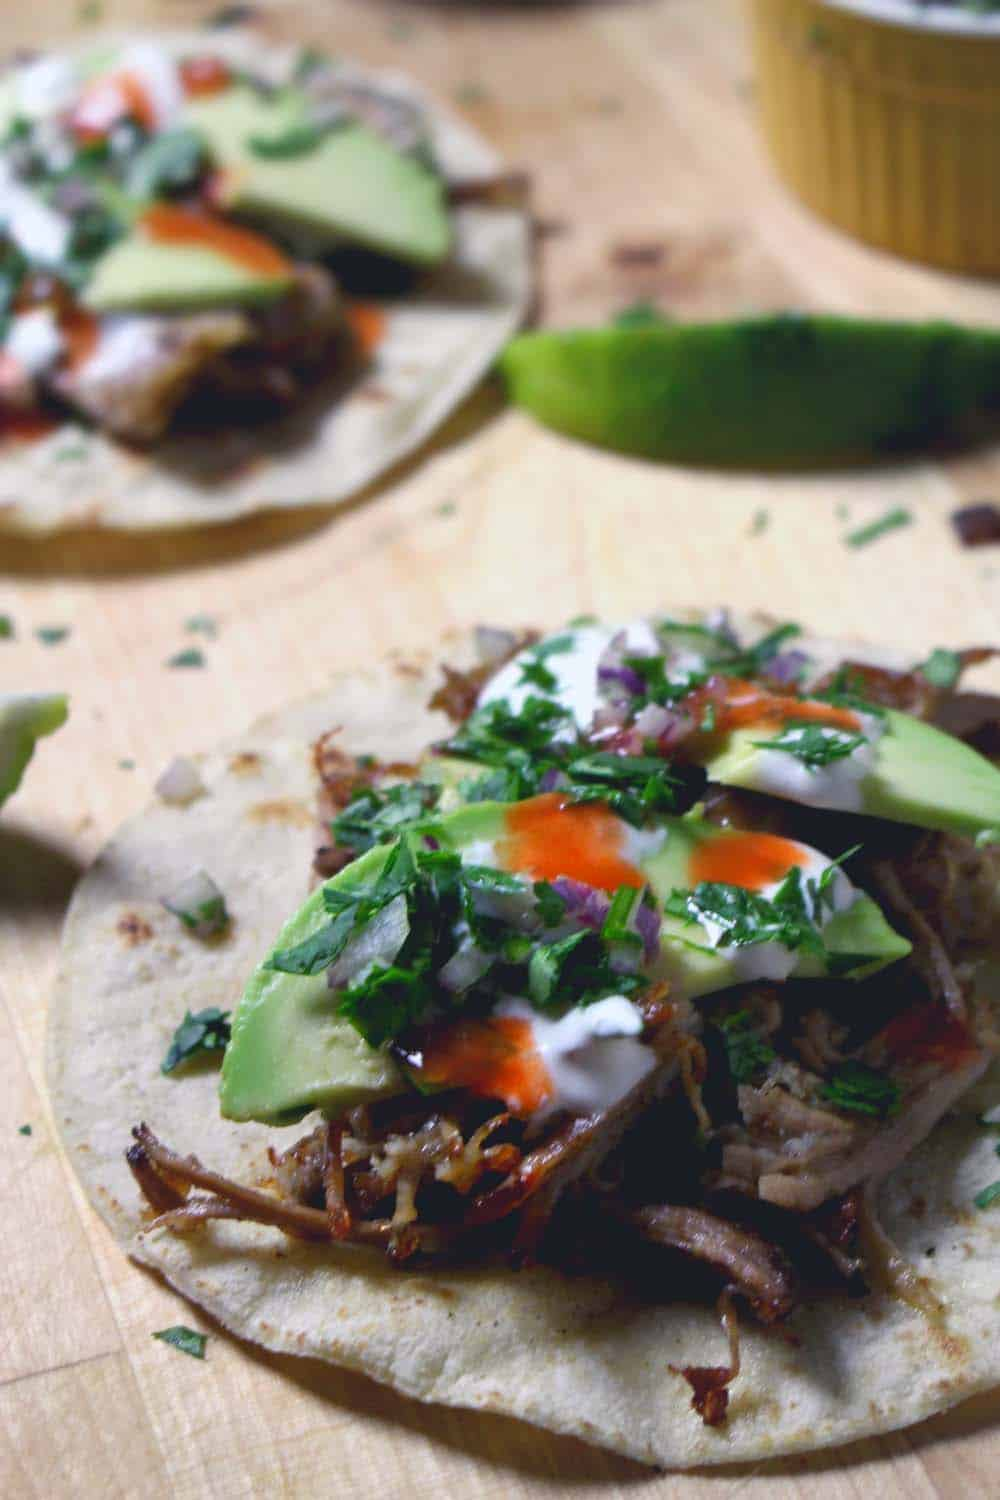 Tortillas with carnitas, sliced avocado, sour cream, hot sauce, and chopped herbs in the middle.